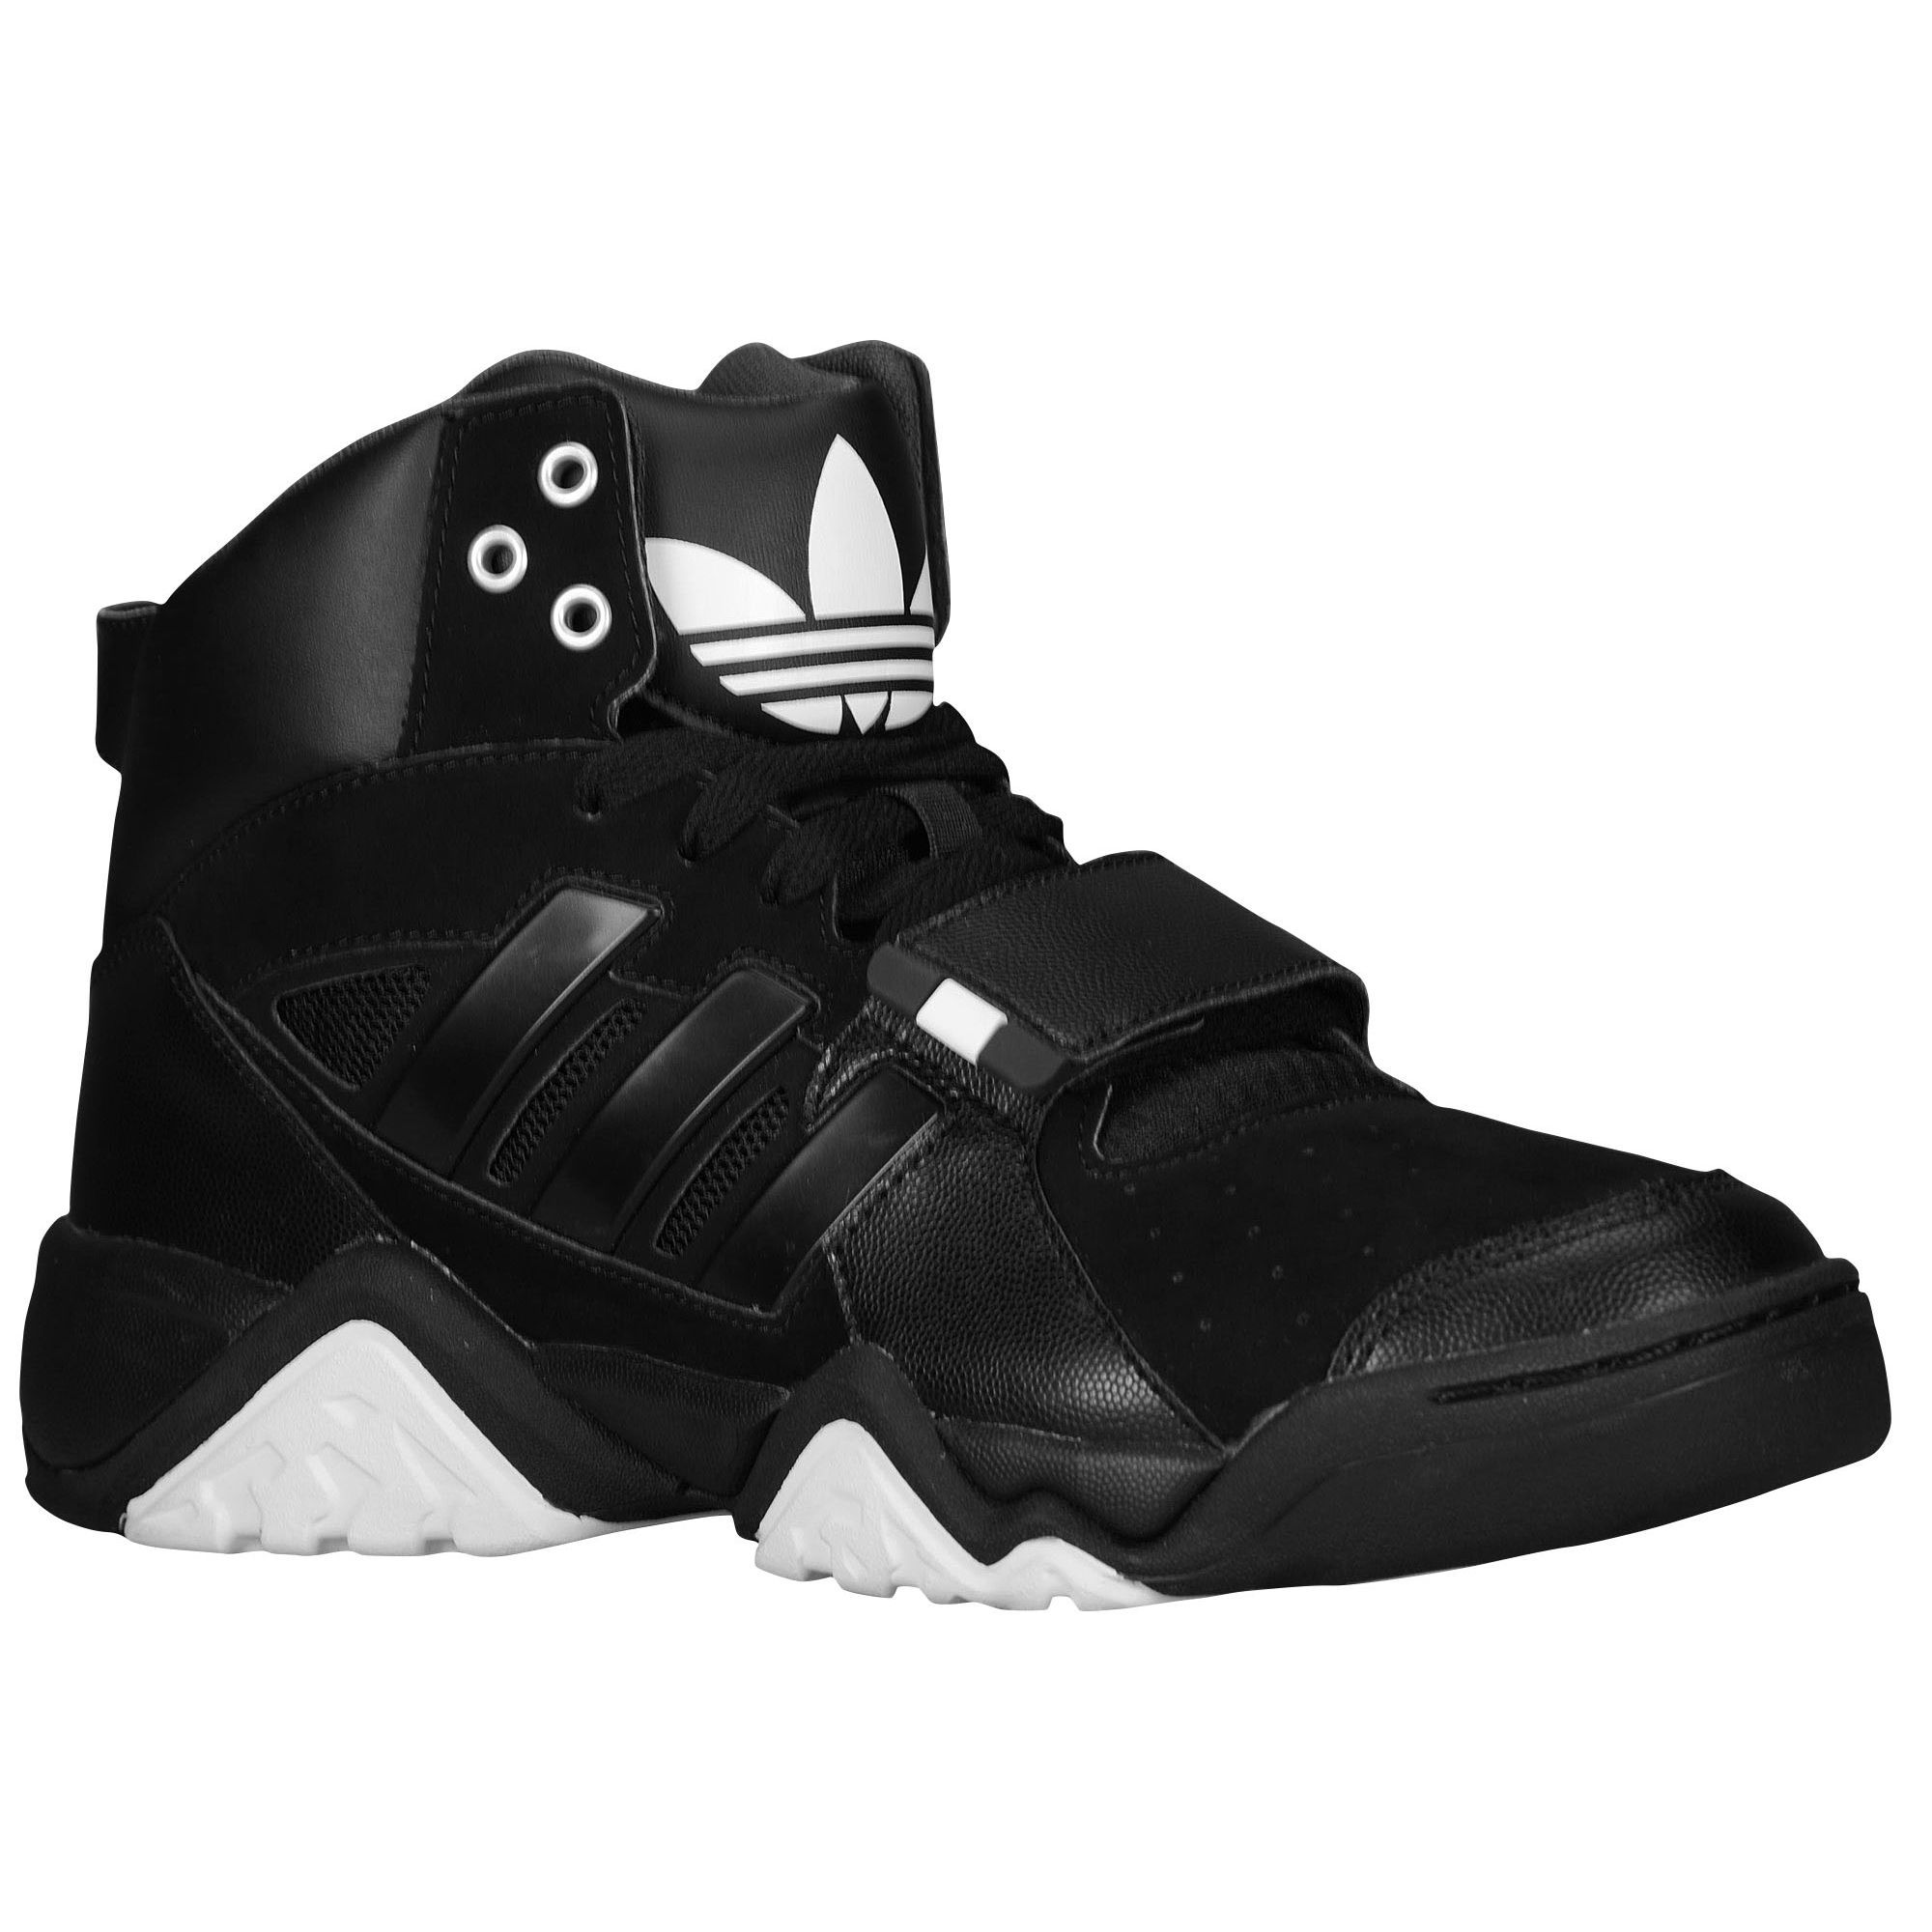 Mens Adidas Originals Streetball Classic Sneakers New, Black / White in  Clothing, Shoes & Accessories, Men's Shoes, Athletic